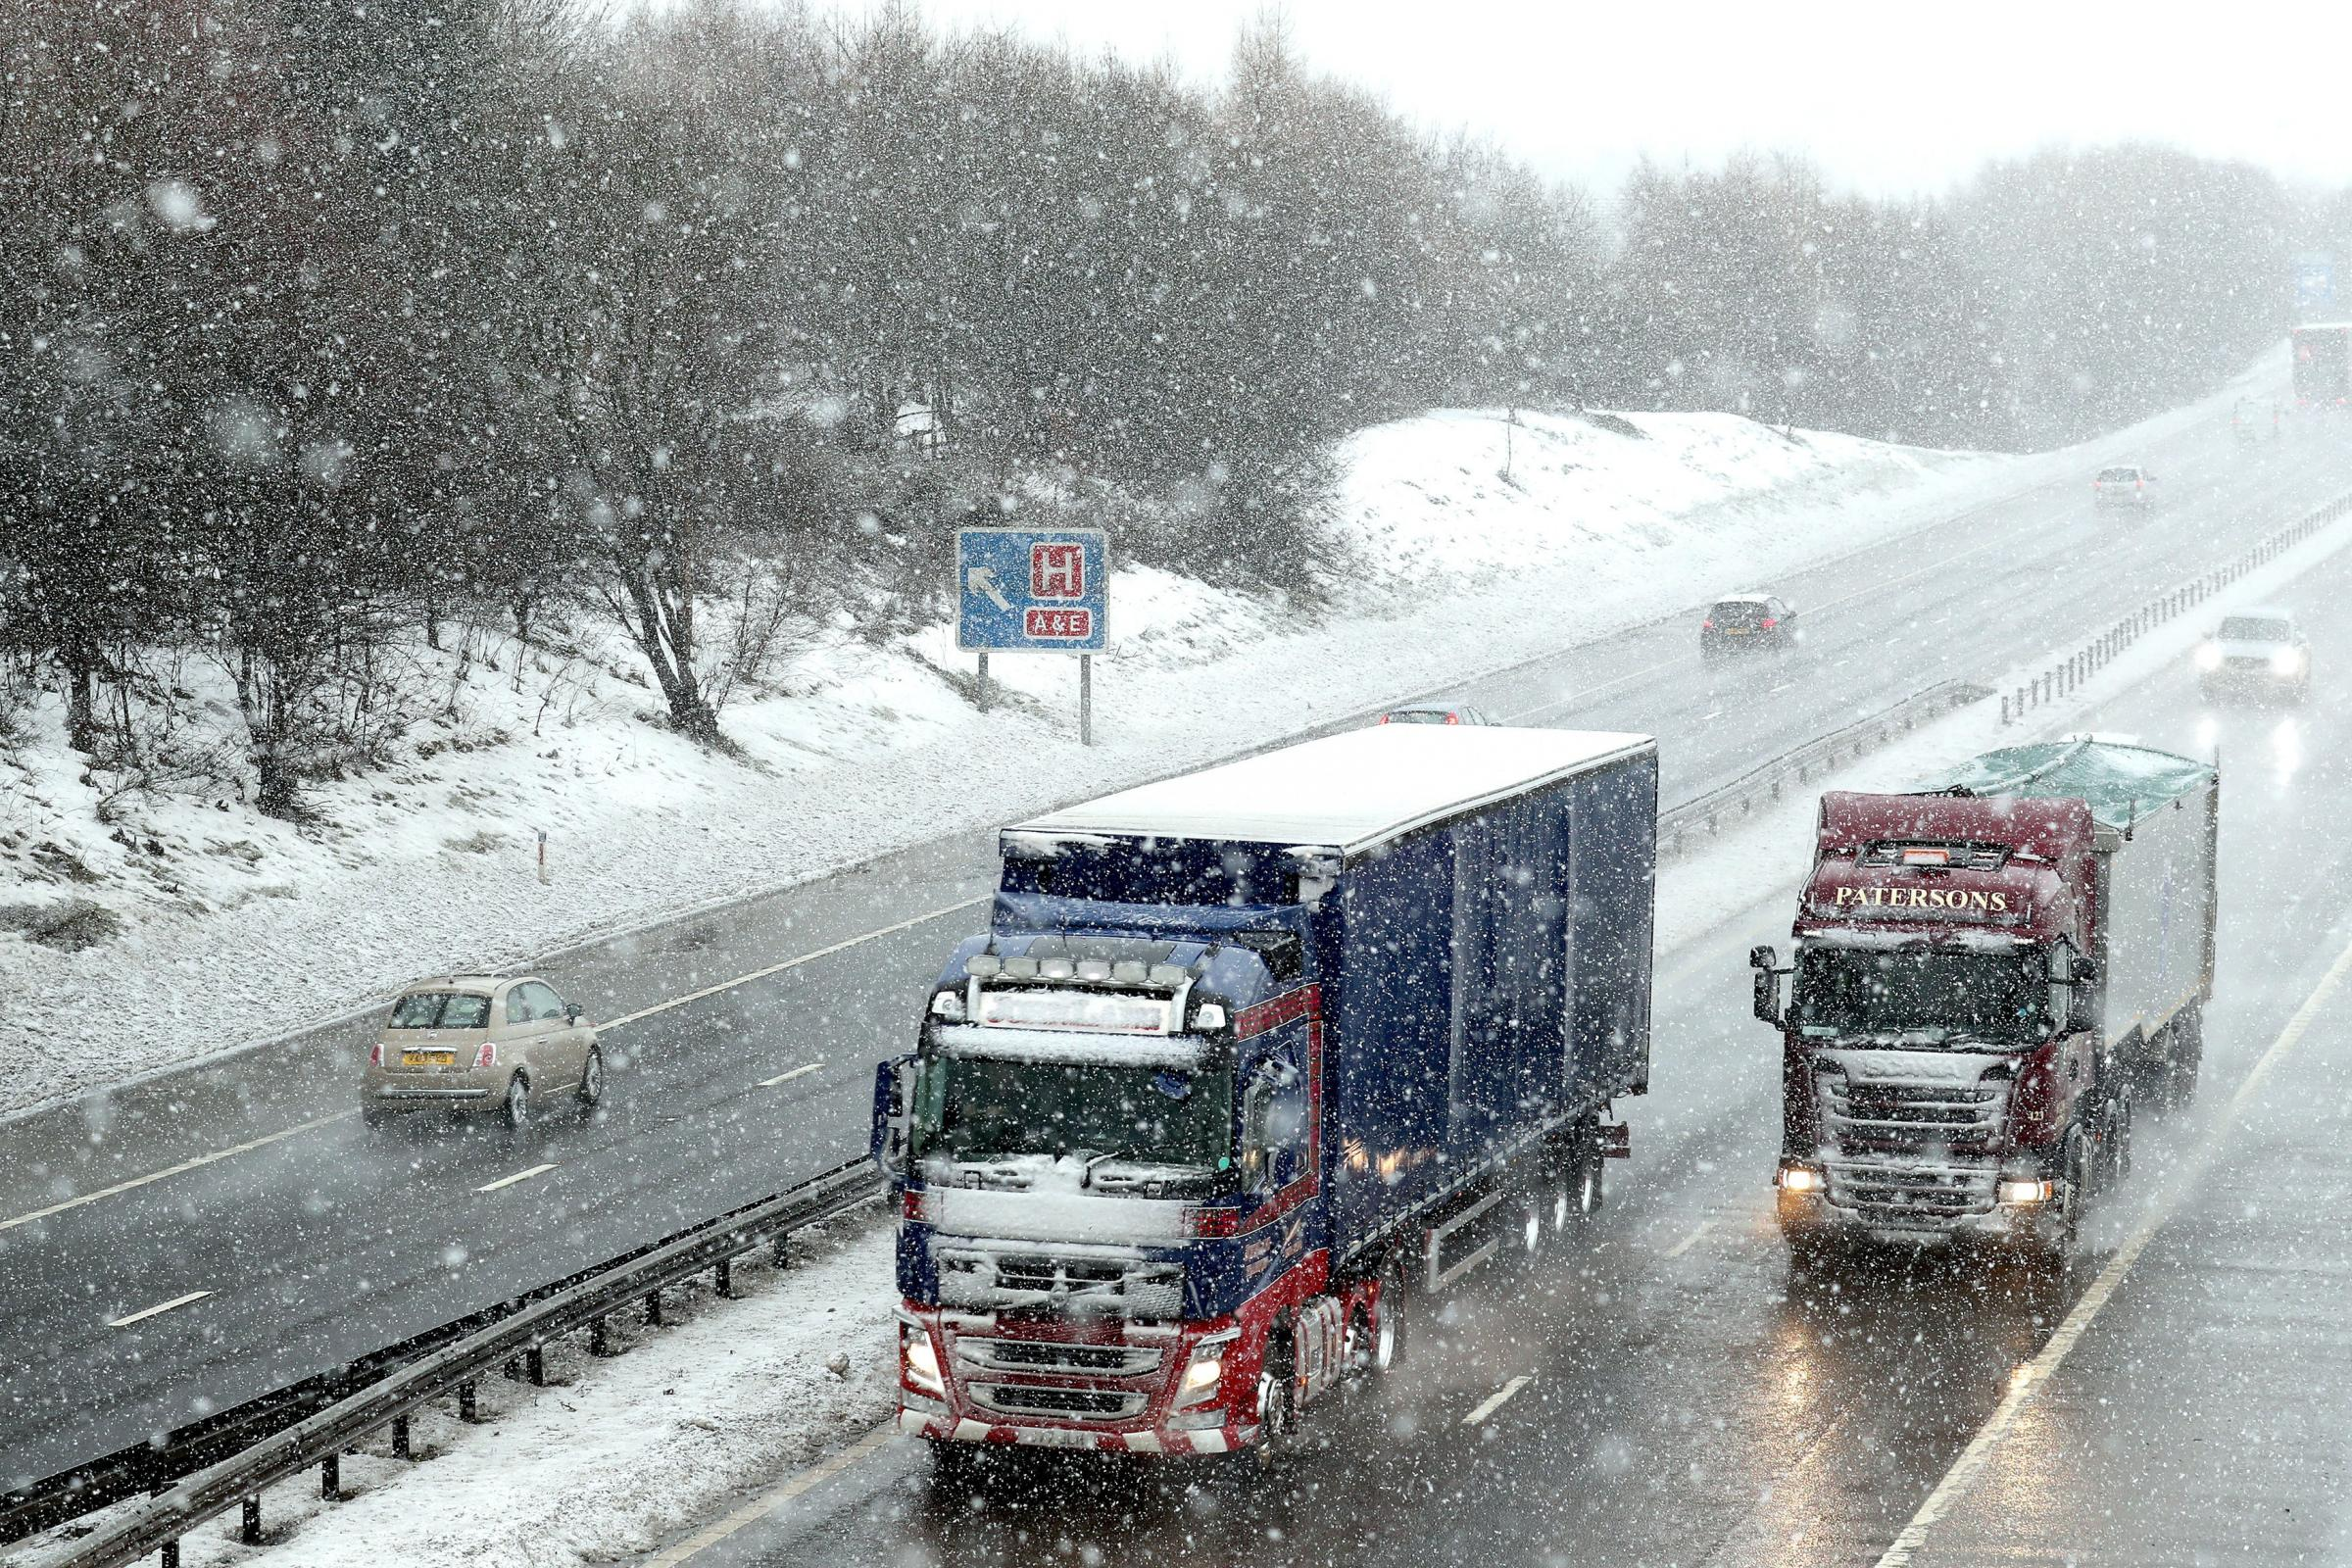 Lorries in the snow